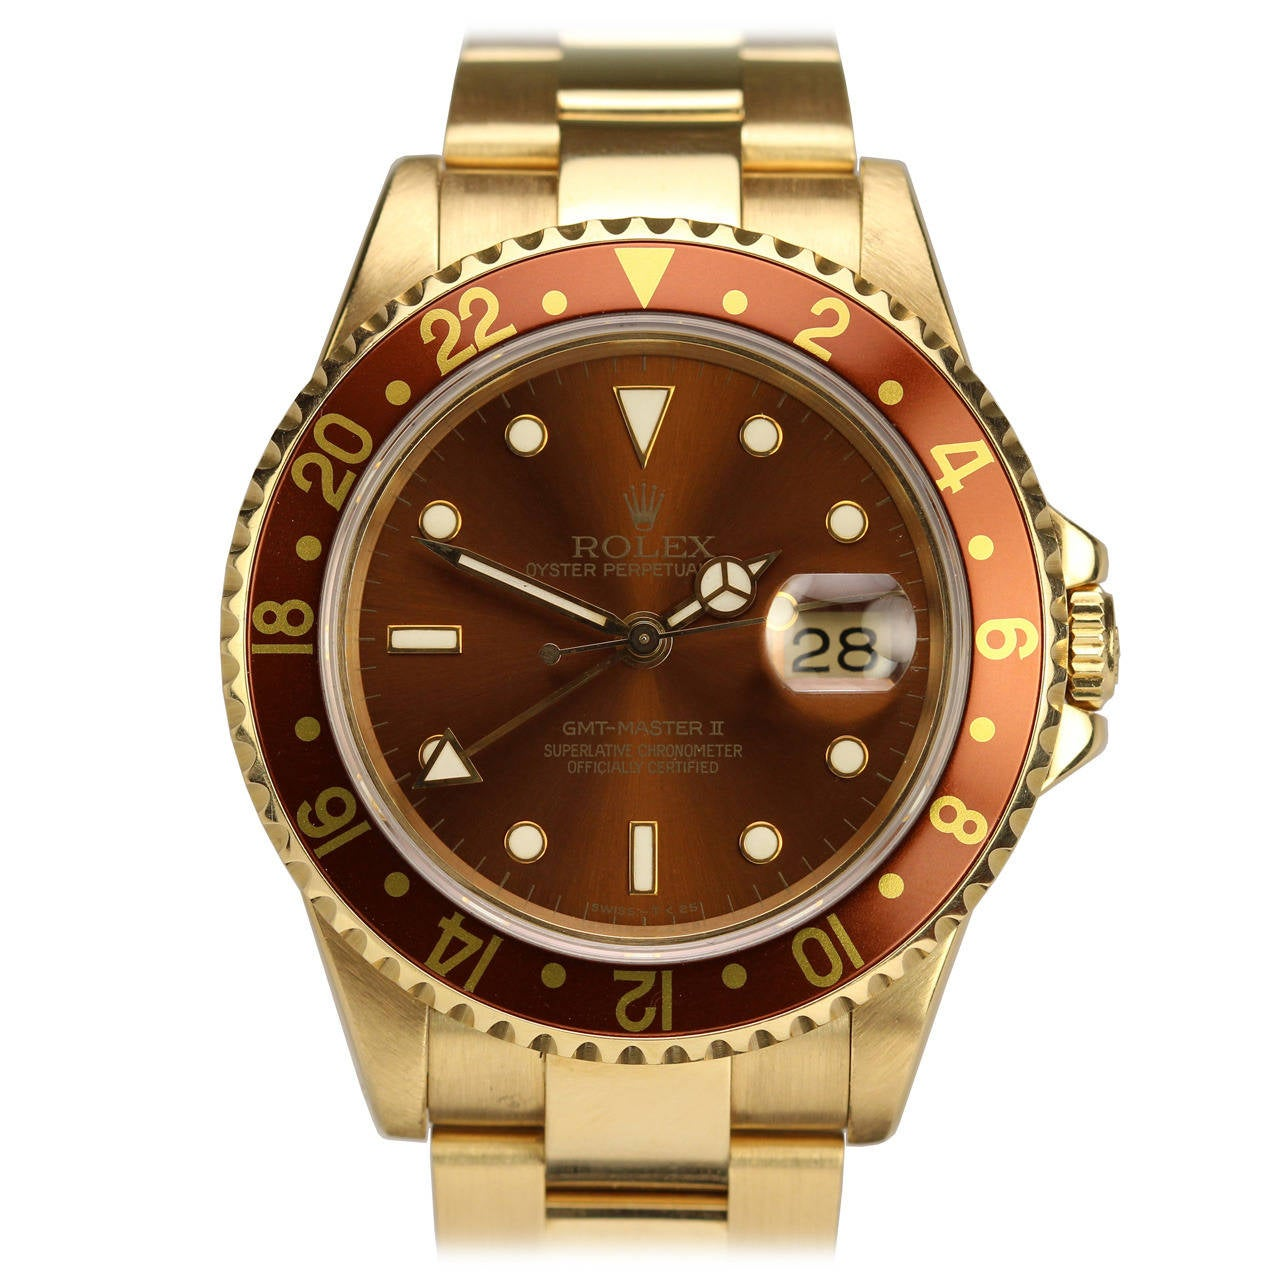 rolex yellow gold gmt master ii wristwatch ref 16718 at. Black Bedroom Furniture Sets. Home Design Ideas